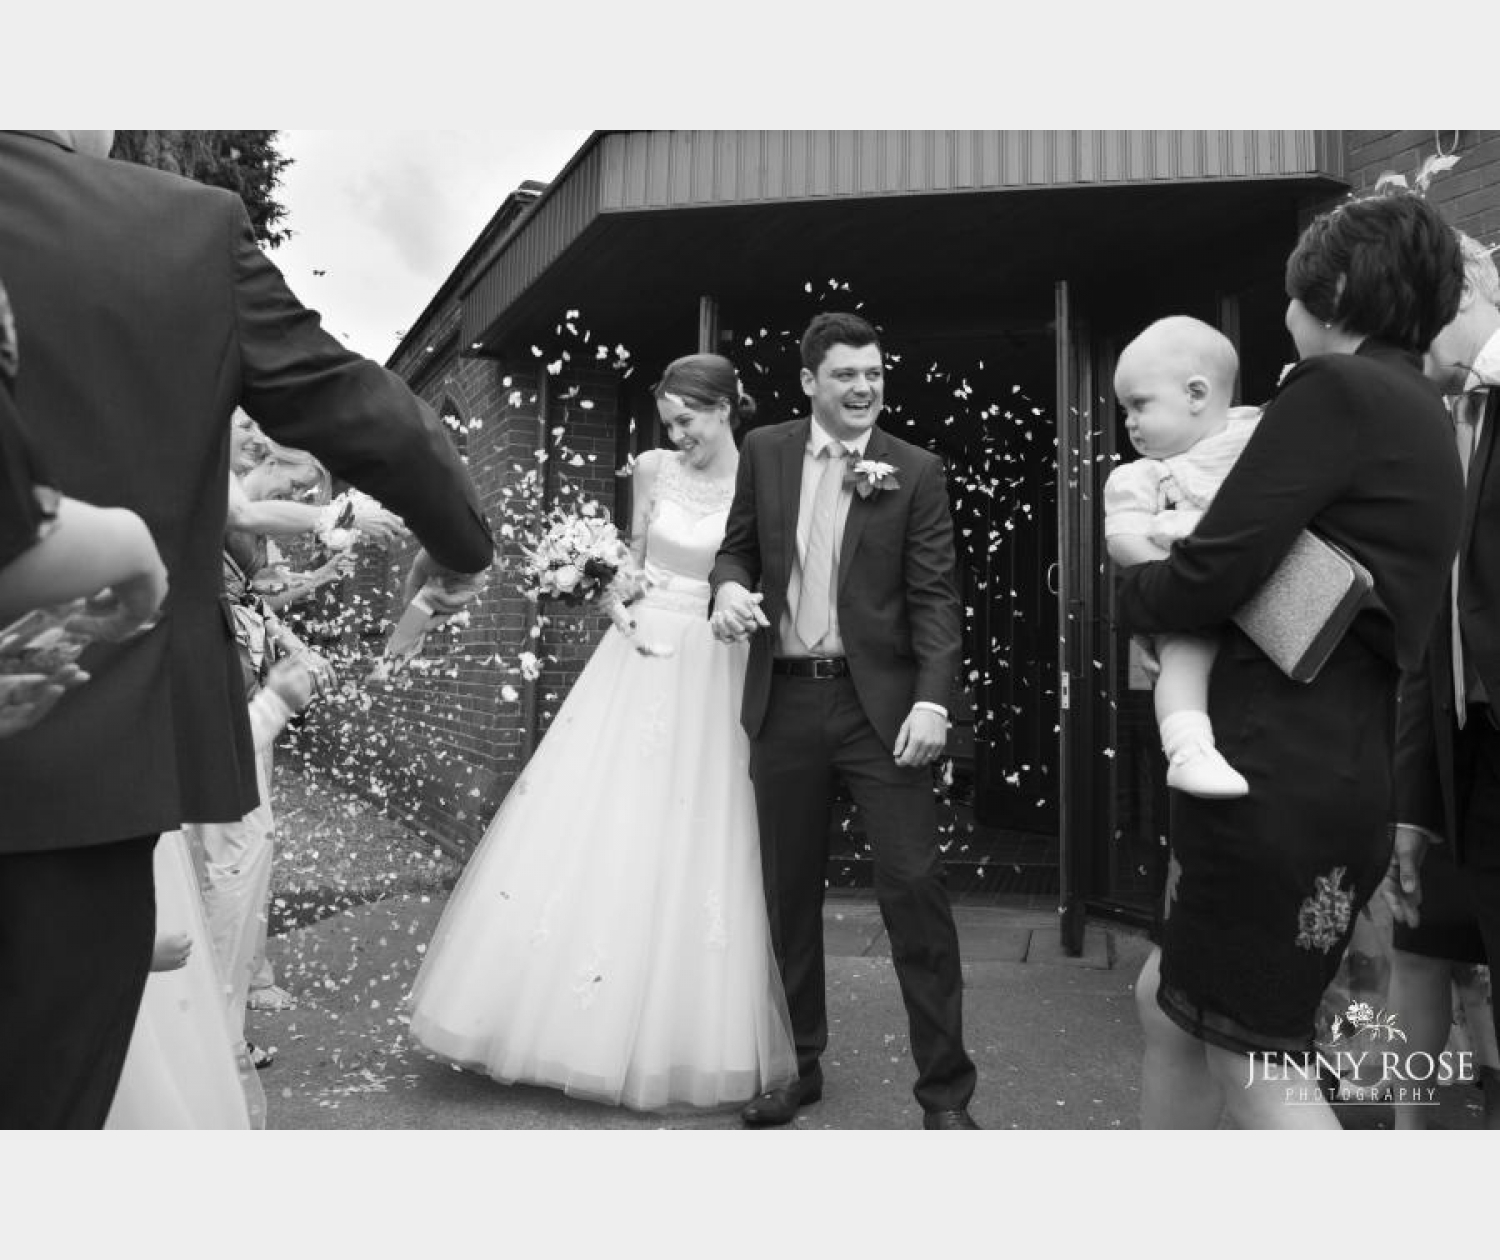 Wedding Photographer - Some 2015 Dates Still Available!